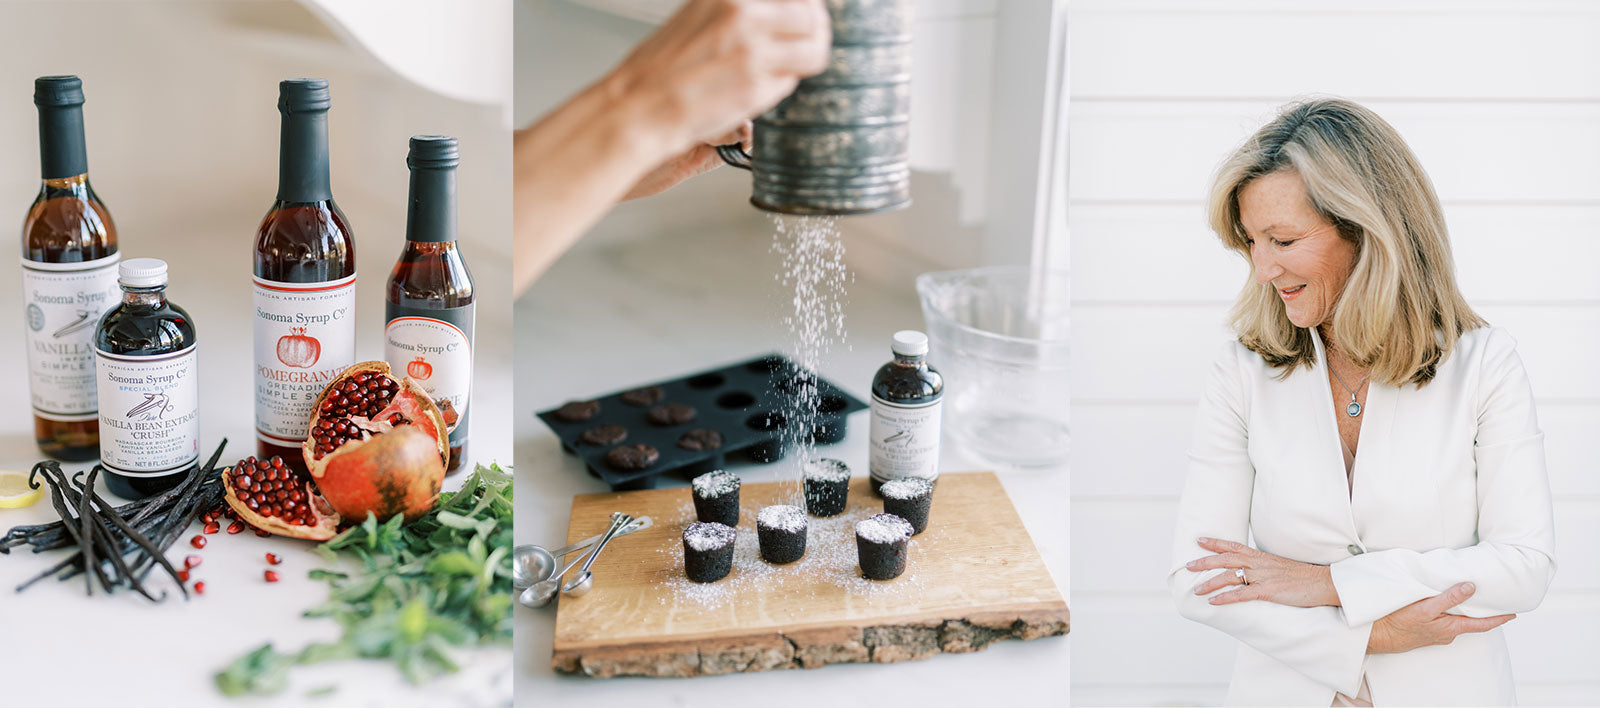 Karin Campion, Founder Sonoma Syrup, all-natural syrups, extracts and bar mixers